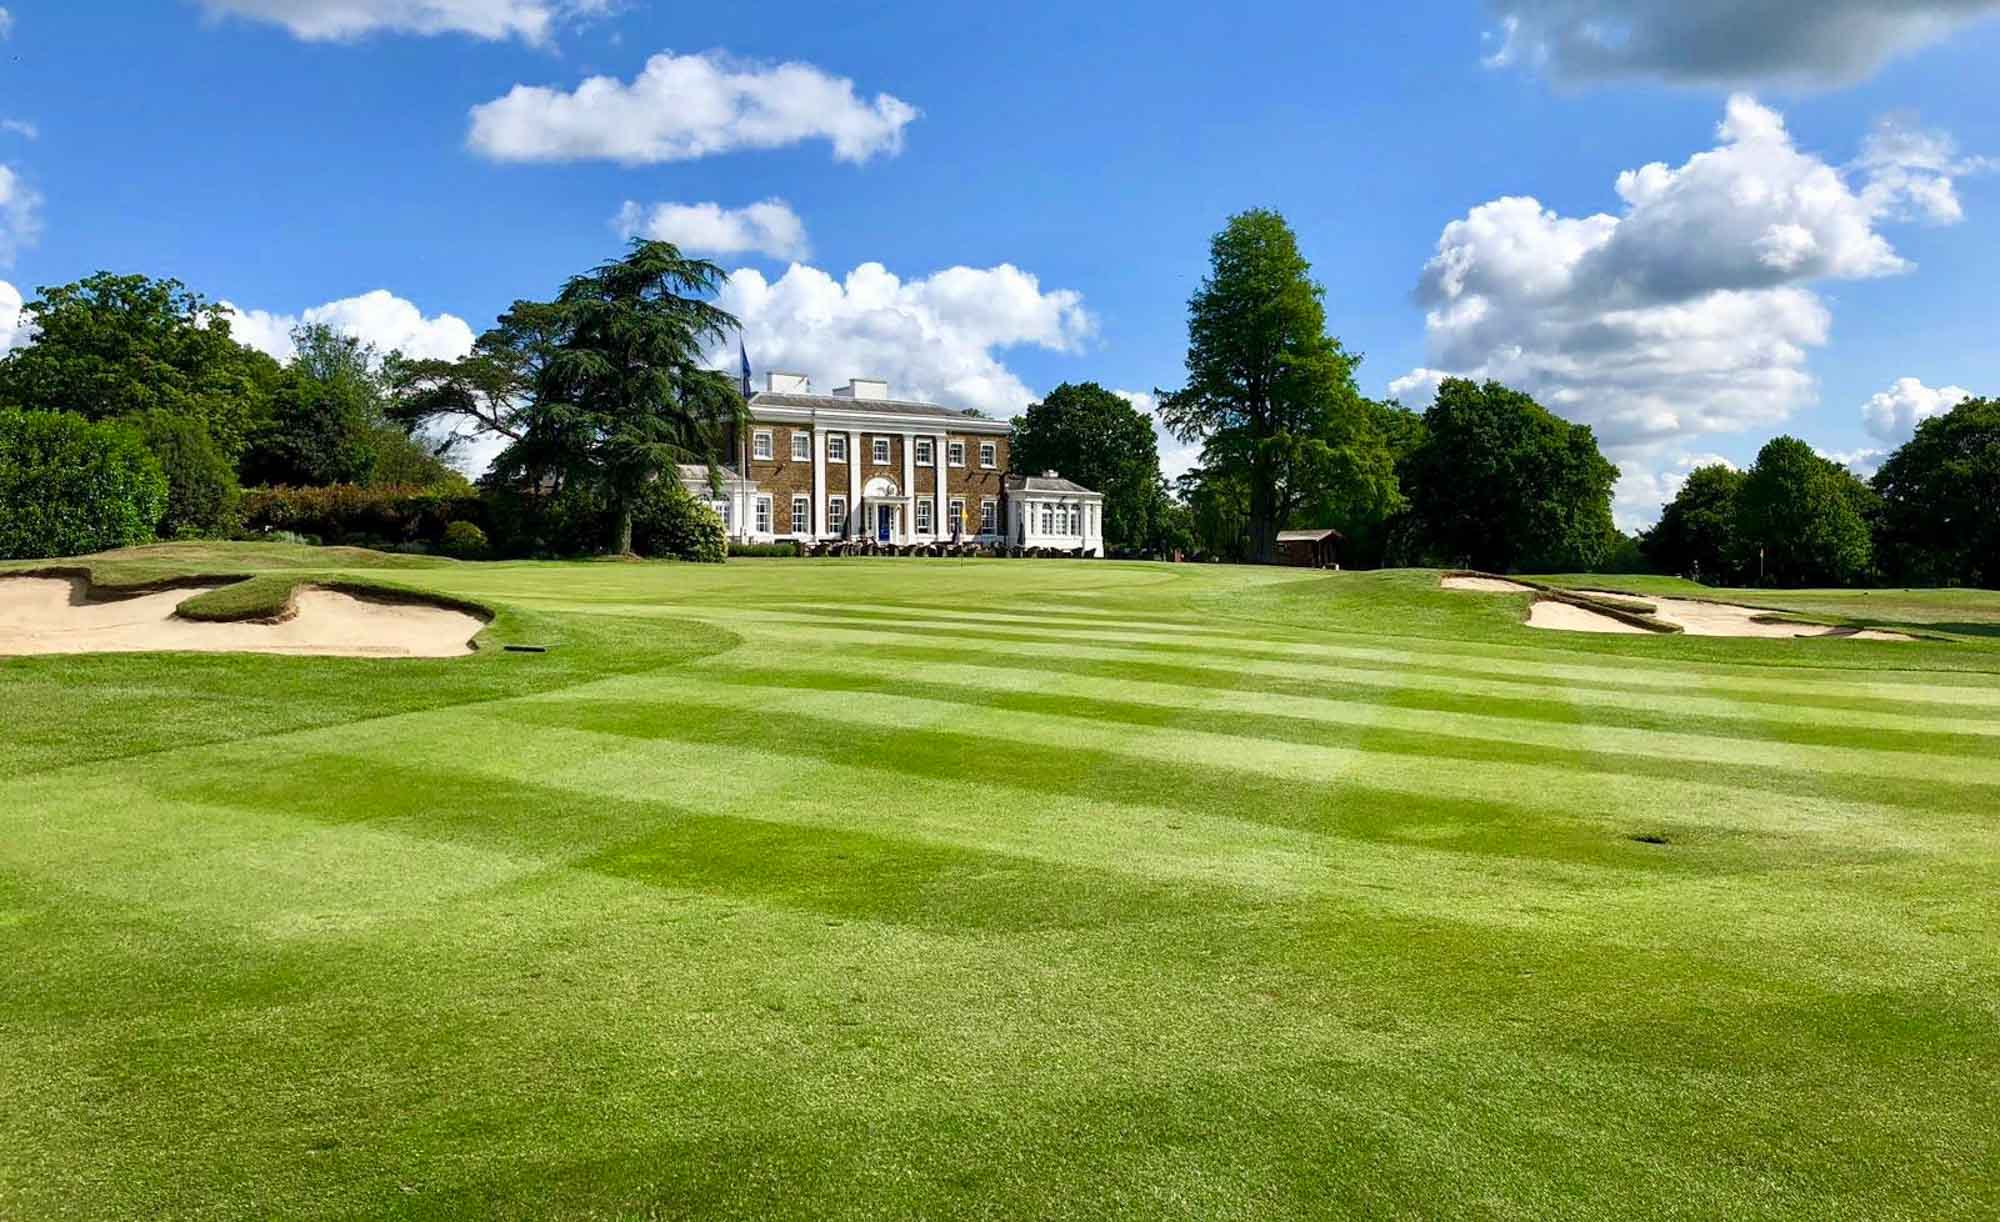 A photo of the clubhouse at the Hadley Wood Golf Club.